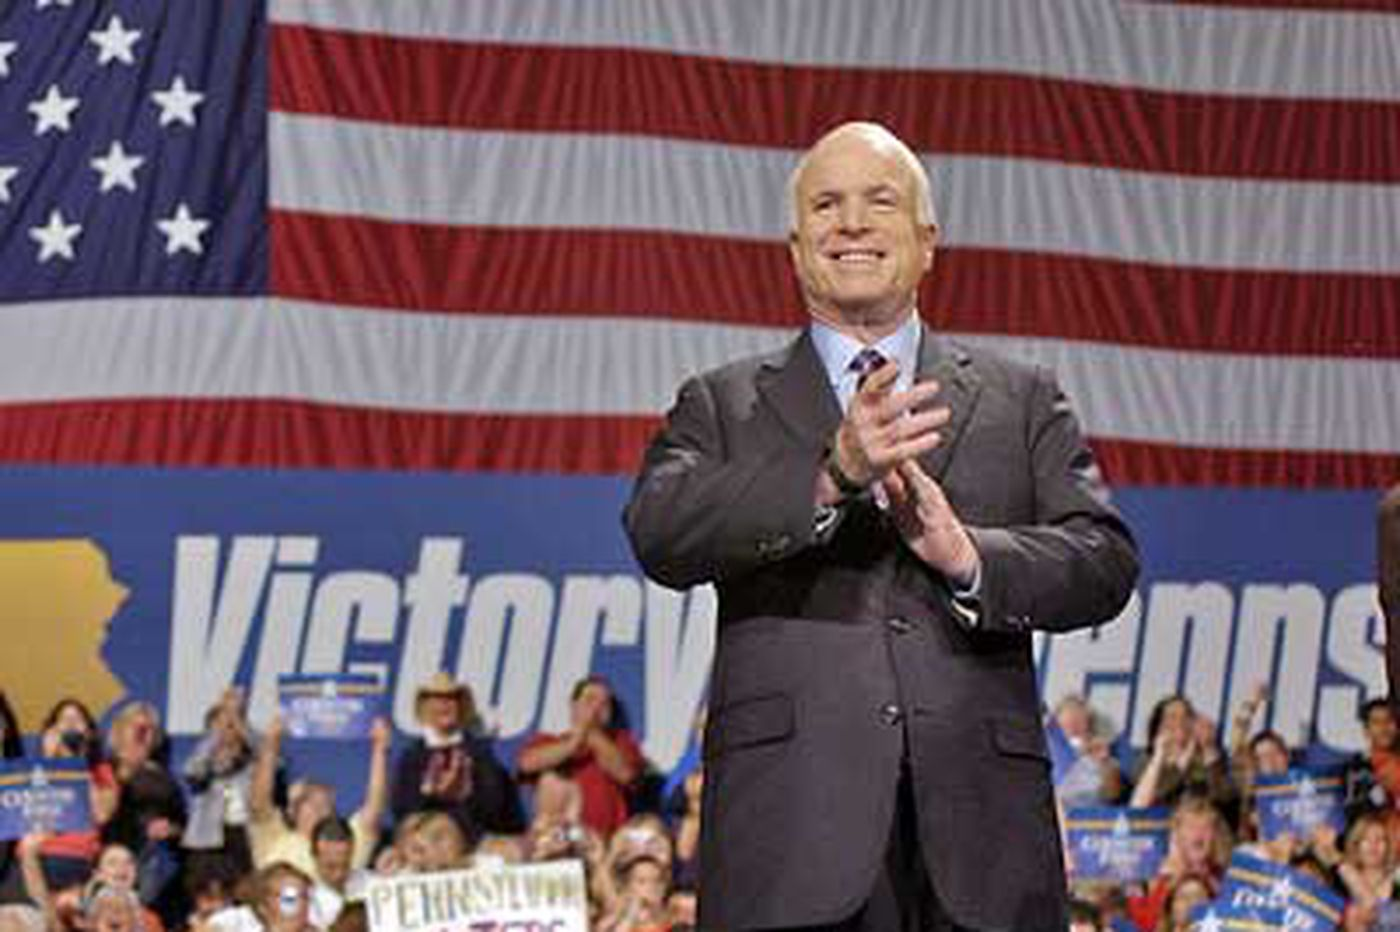 Pa. Democrats now outnumber GOP by almost 1.2 million